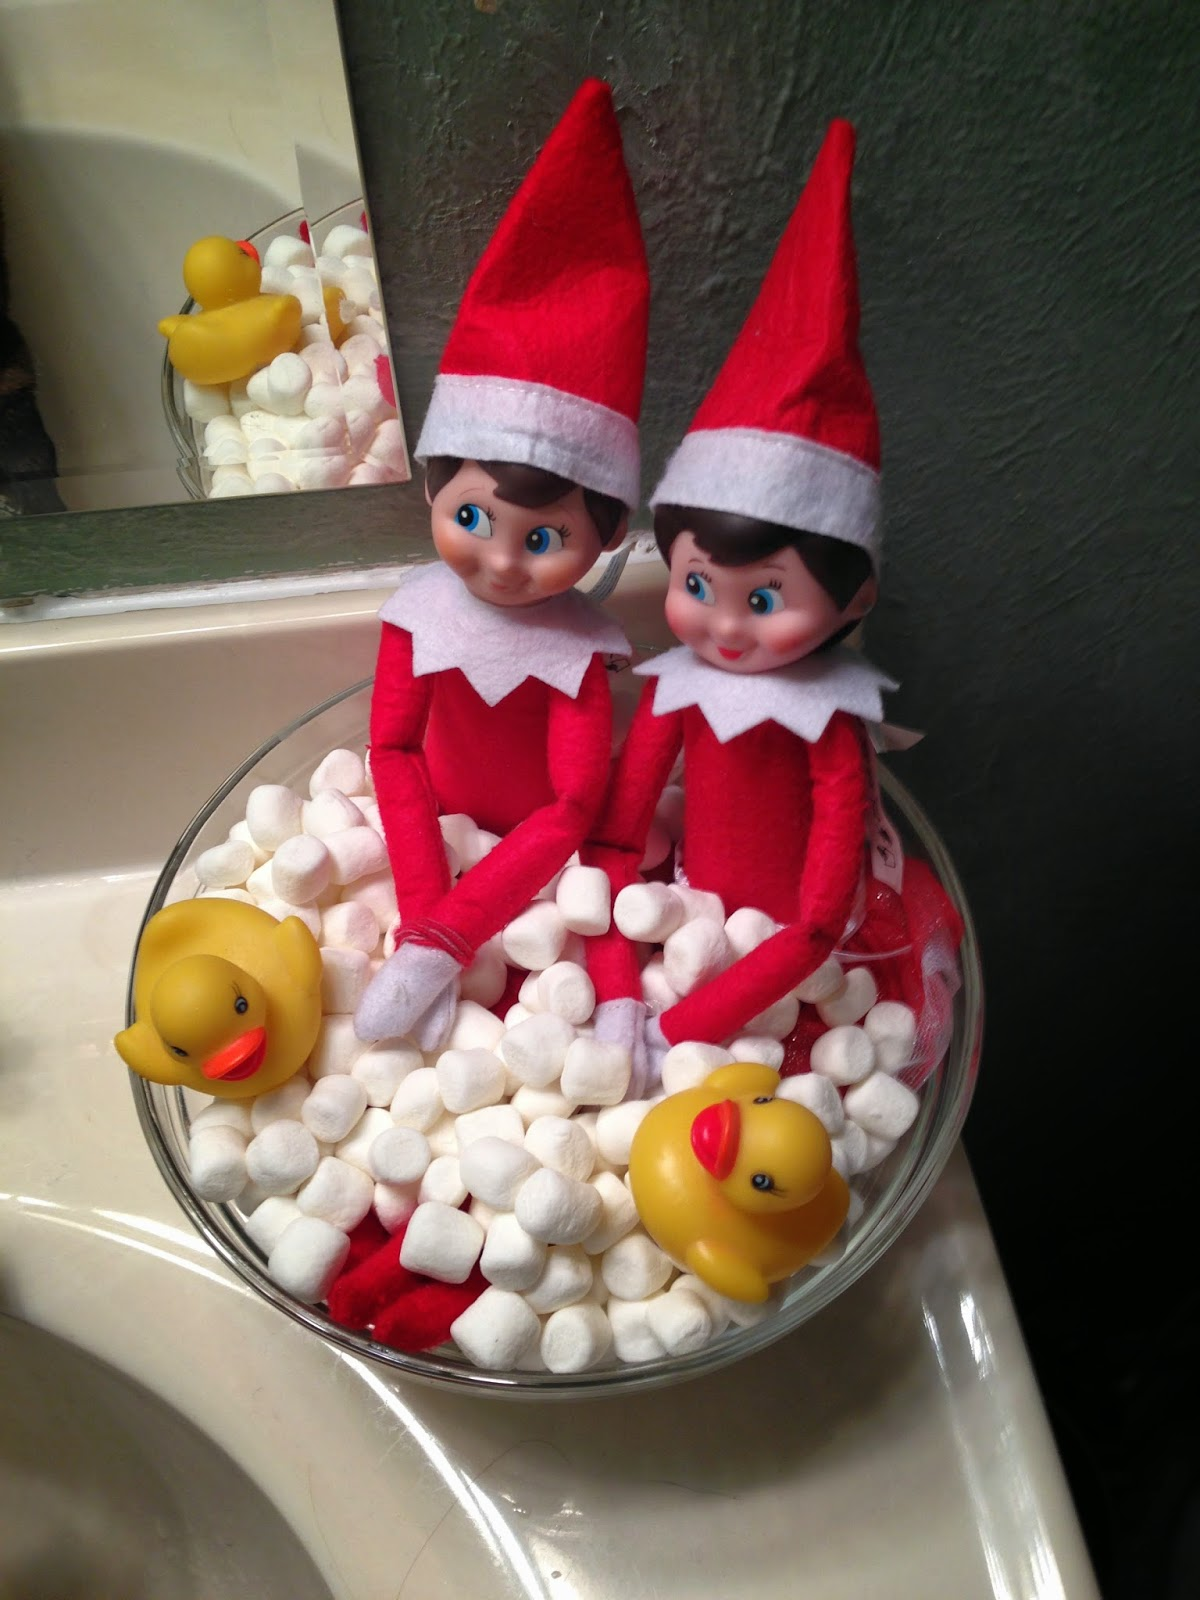 Elf on the shelf ideas.  Easy Elf on the shelf ideas.  Elf on the shelf ideas for 2 elves.  using 2 elves for Elf on the Shelf.  Elf on the Shelf ideas for toddlers.